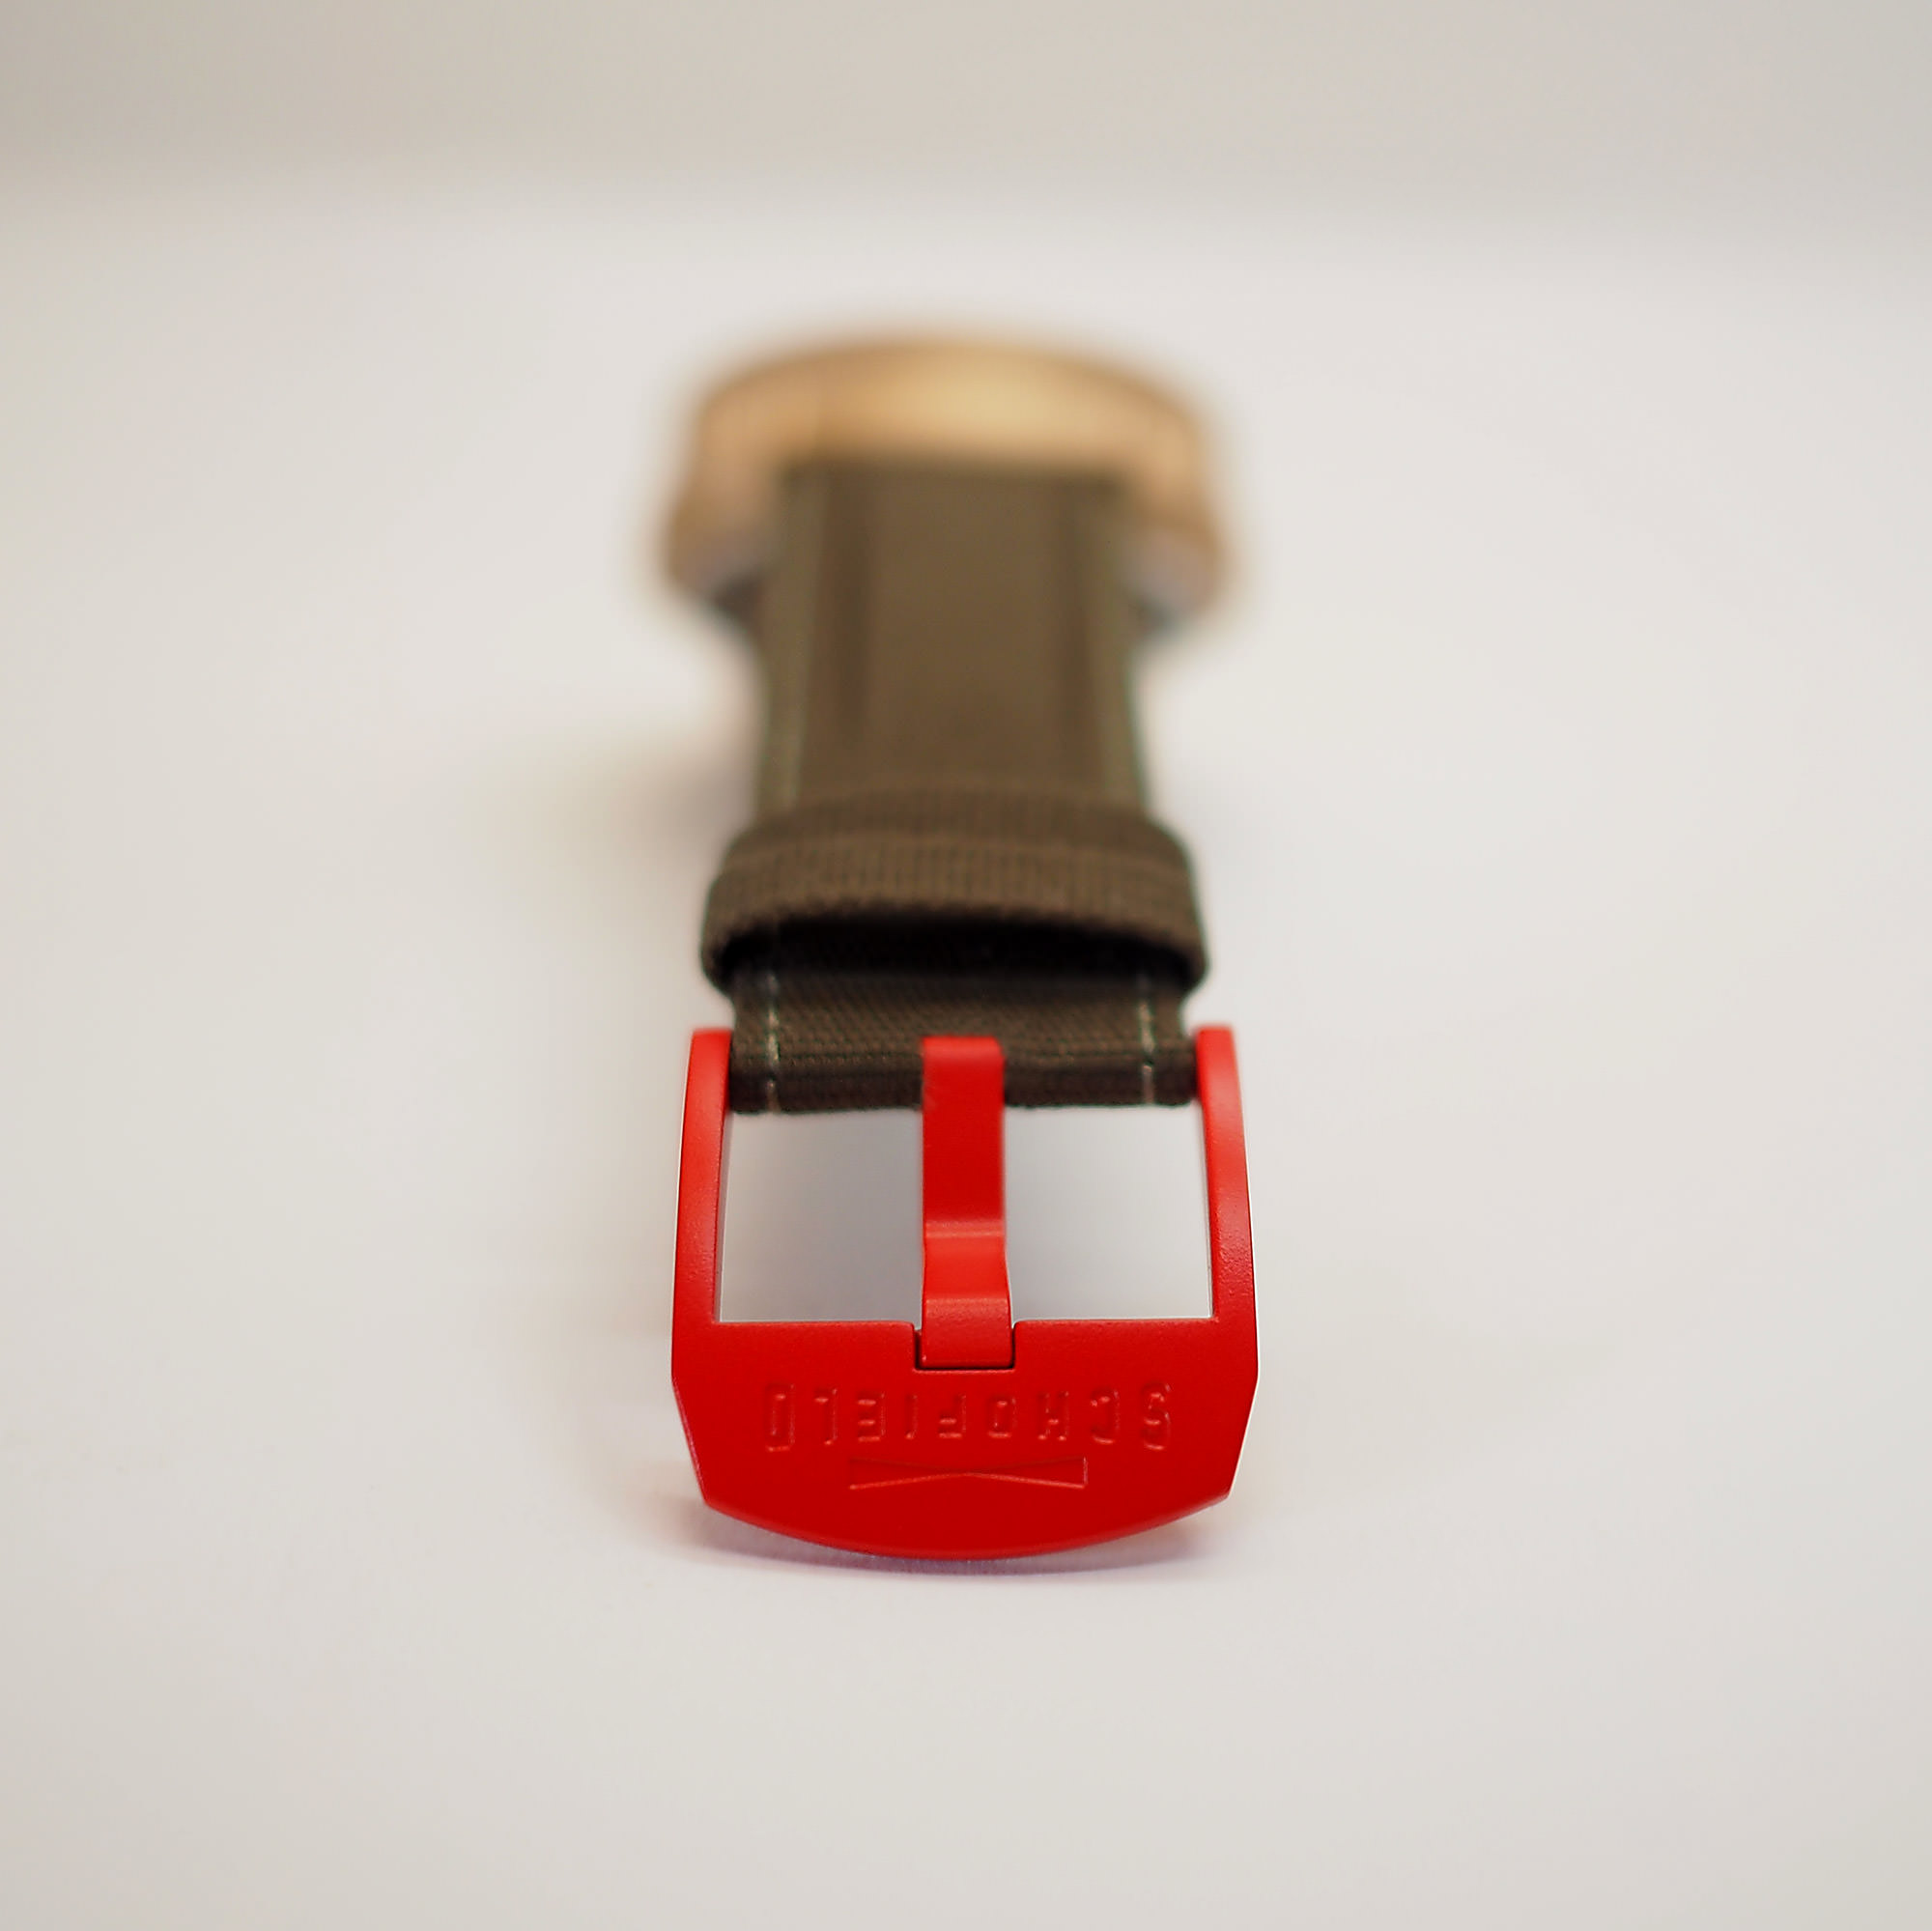 Red Ceramic Buckle